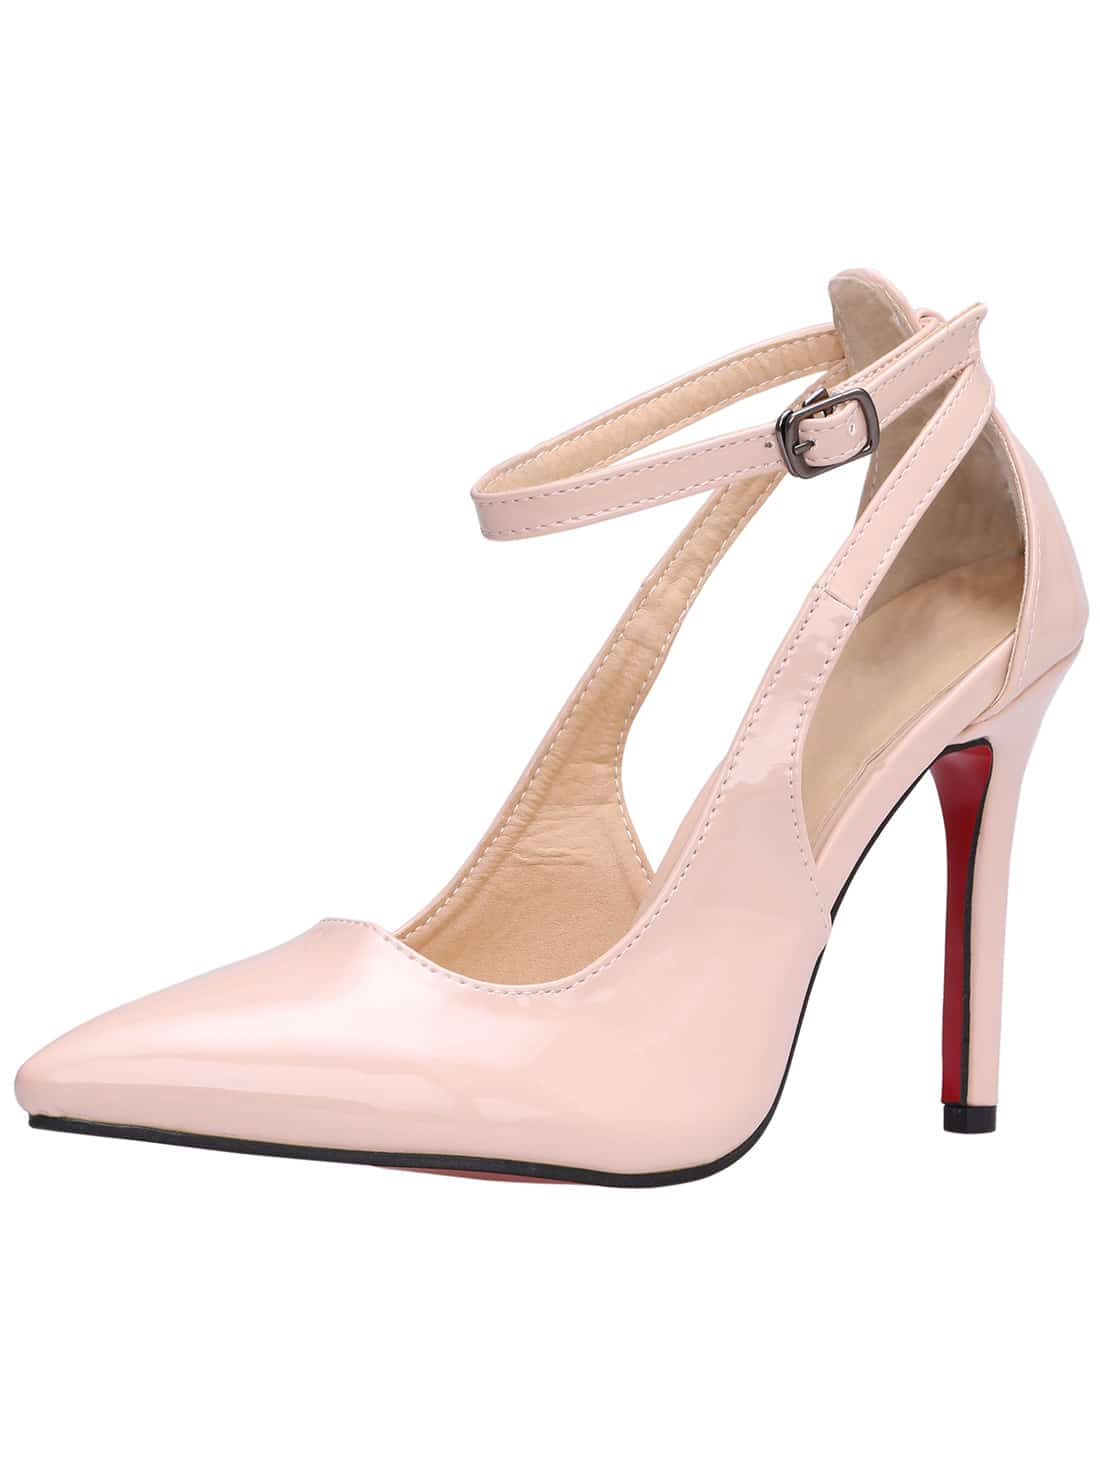 Nude pumps with ankle strap galleries 78